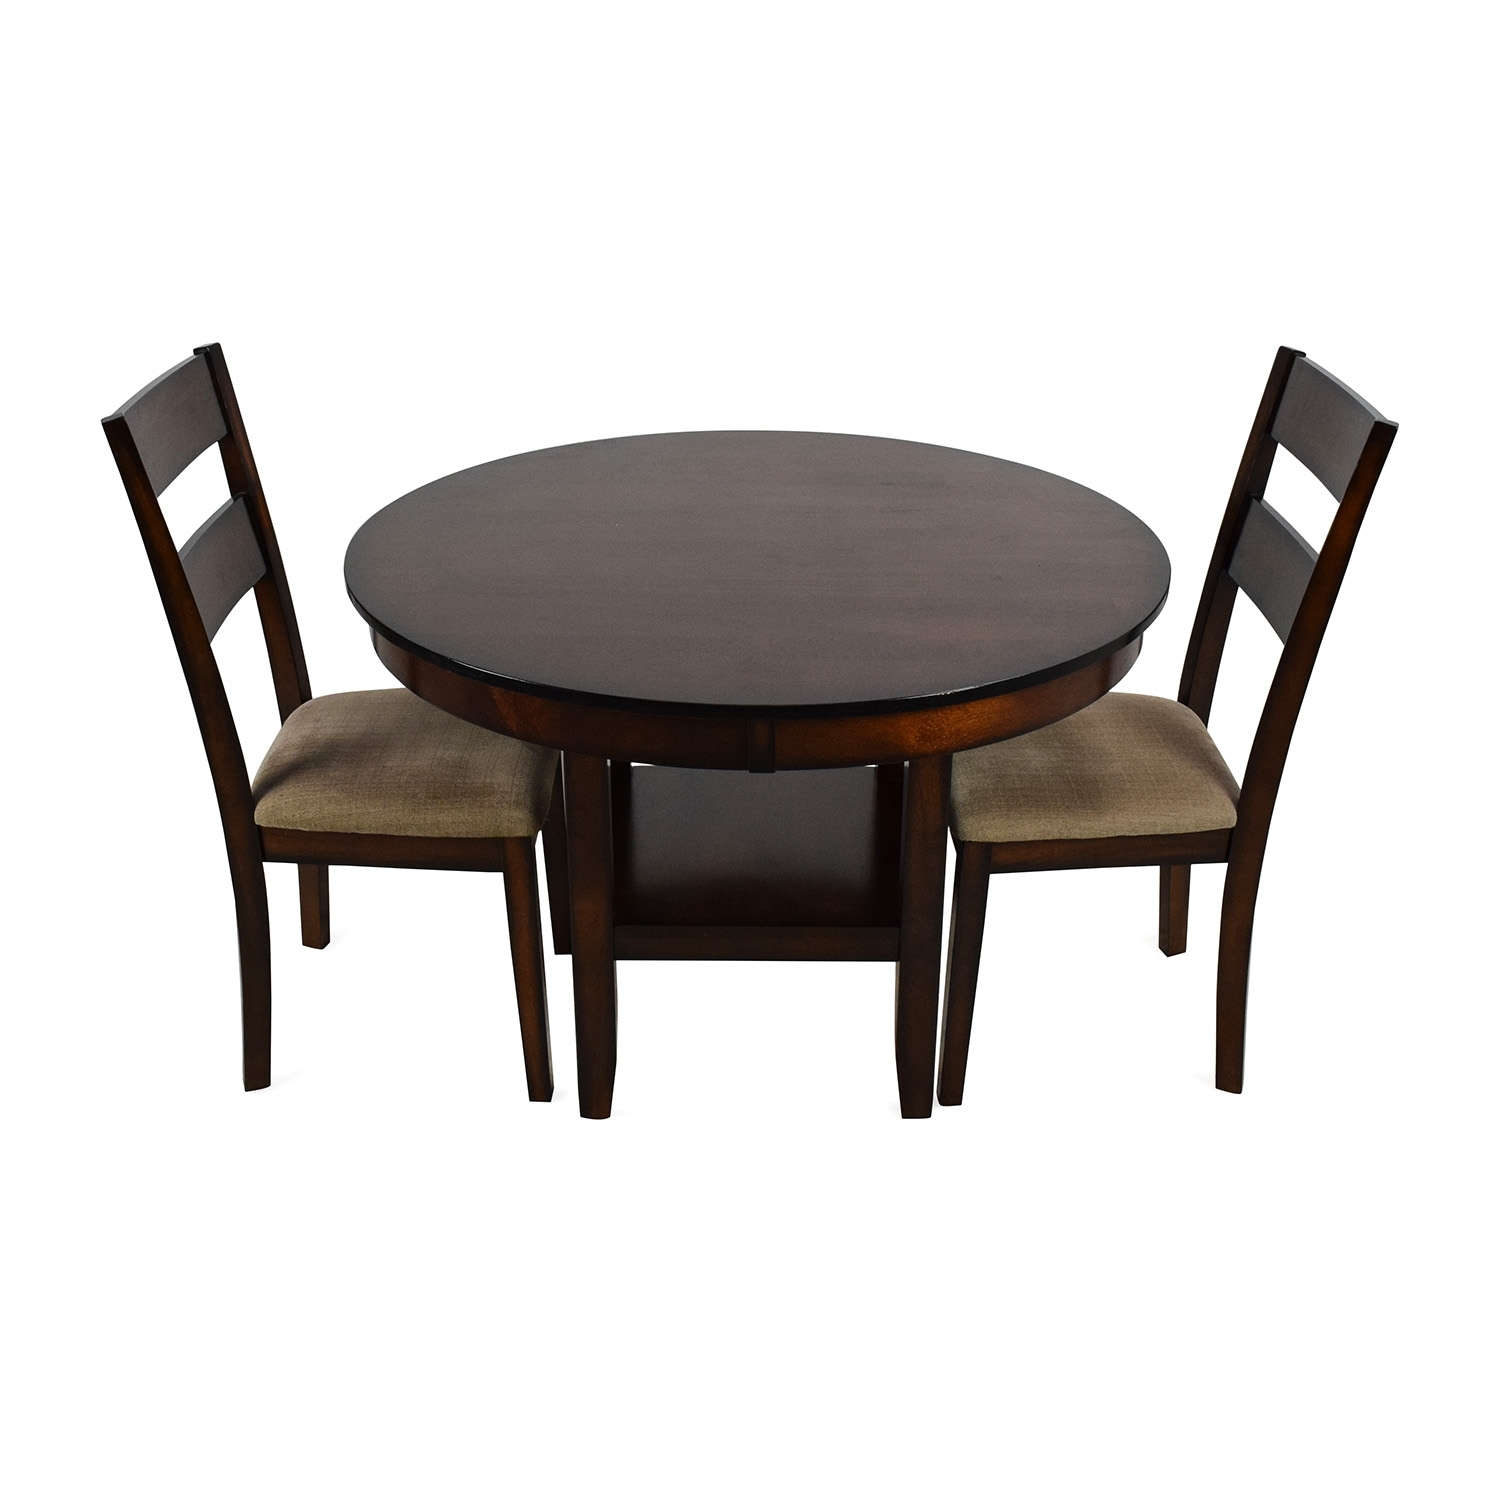 85% Off – Macy's Macy's Branton 3 Piece Dining Room Collection / Tables Within Most Popular Macie 5 Piece Round Dining Sets (View 16 of 20)